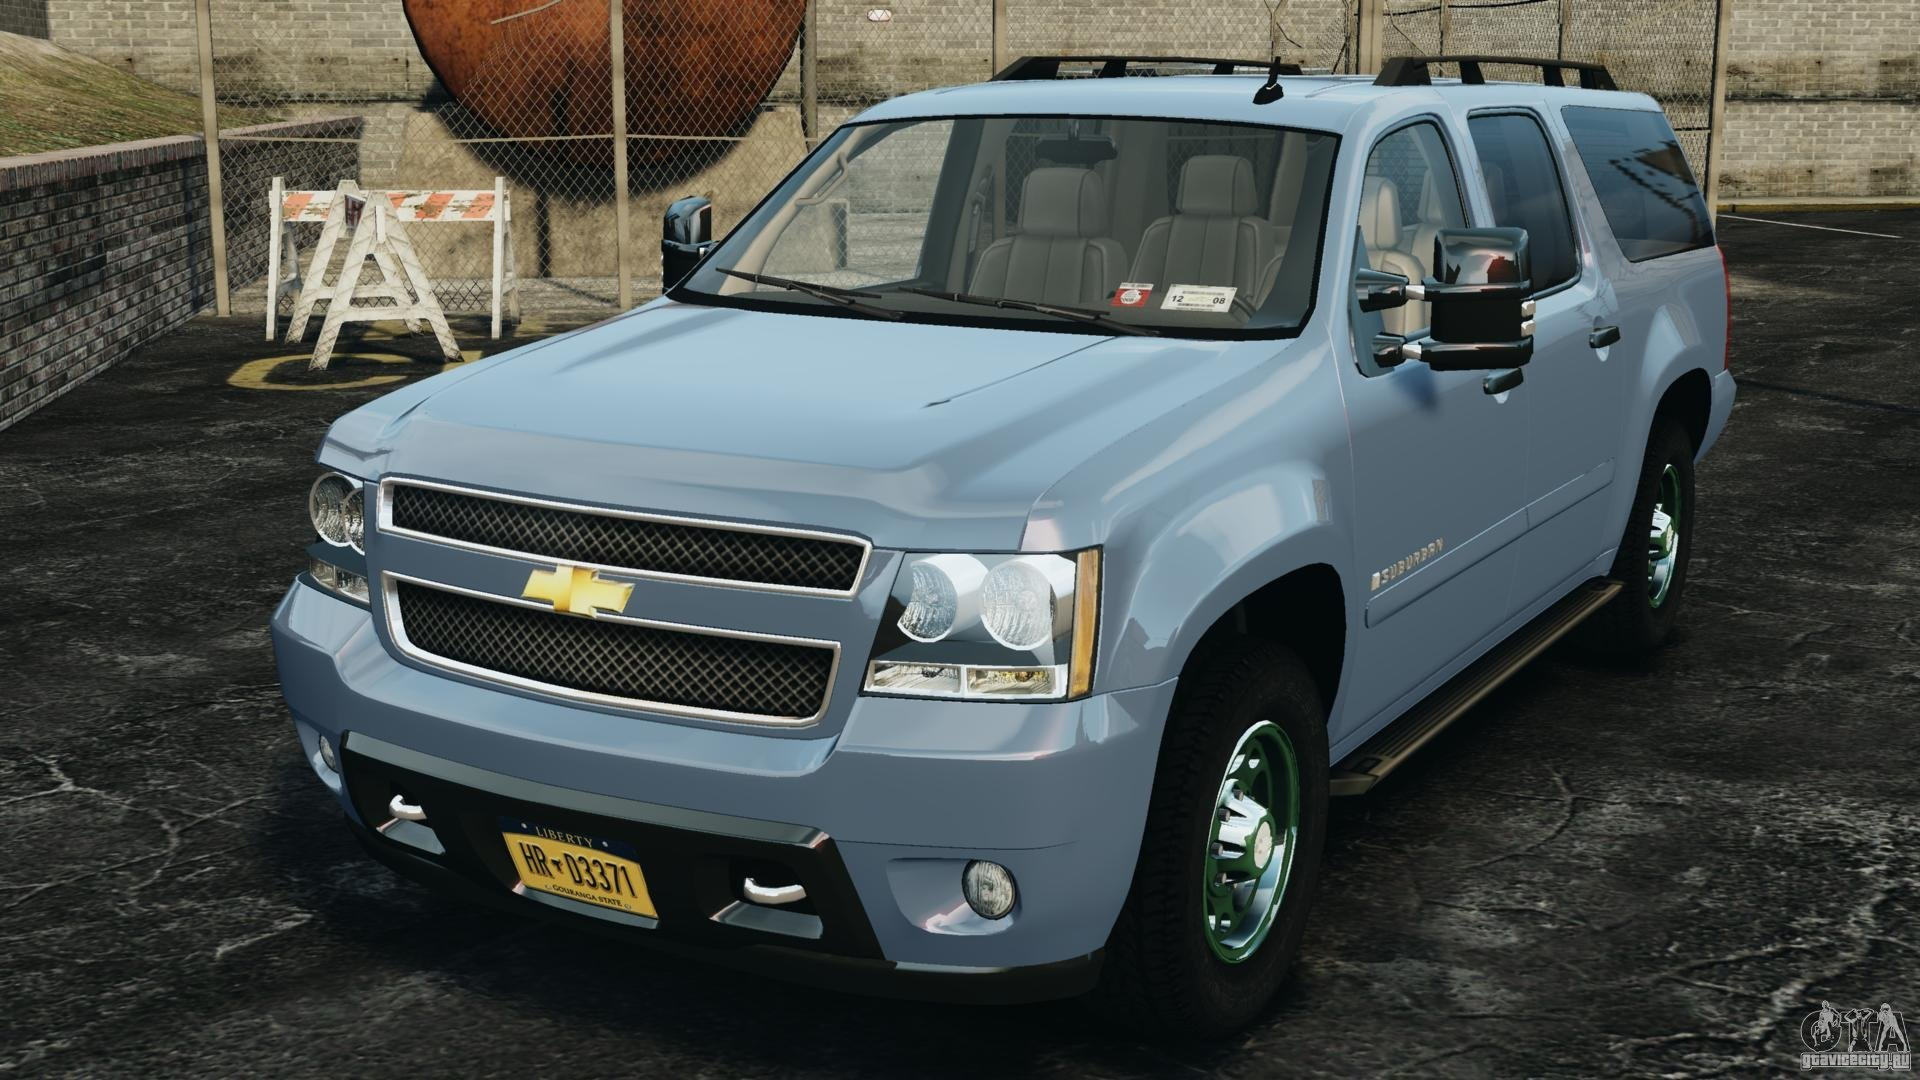 2013 chevrolet suburban gmt900 pictures information and specs auto. Black Bedroom Furniture Sets. Home Design Ideas